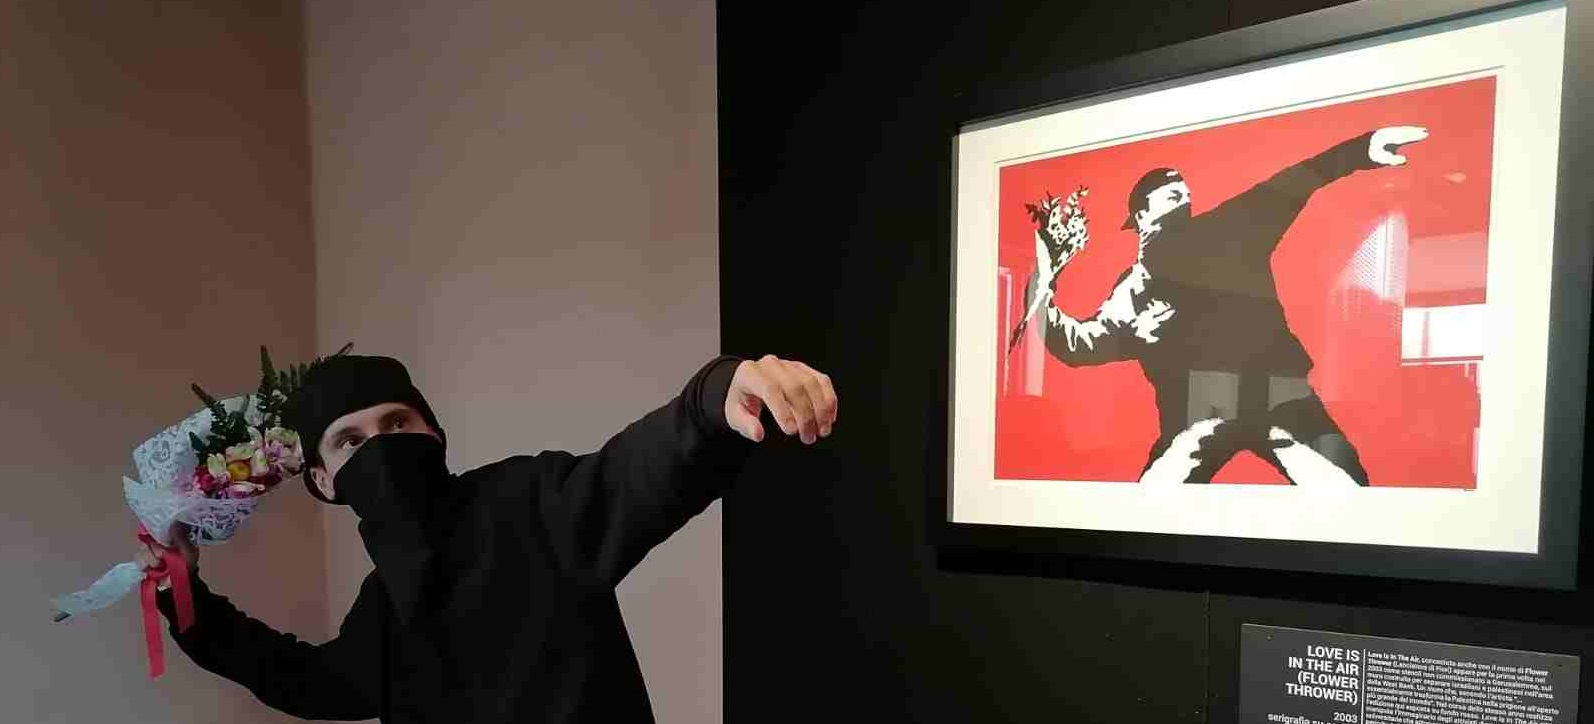 <br><br>EARLY ARTIST KNOWN AS BANKSY 2002 – 2007 Prints Selection